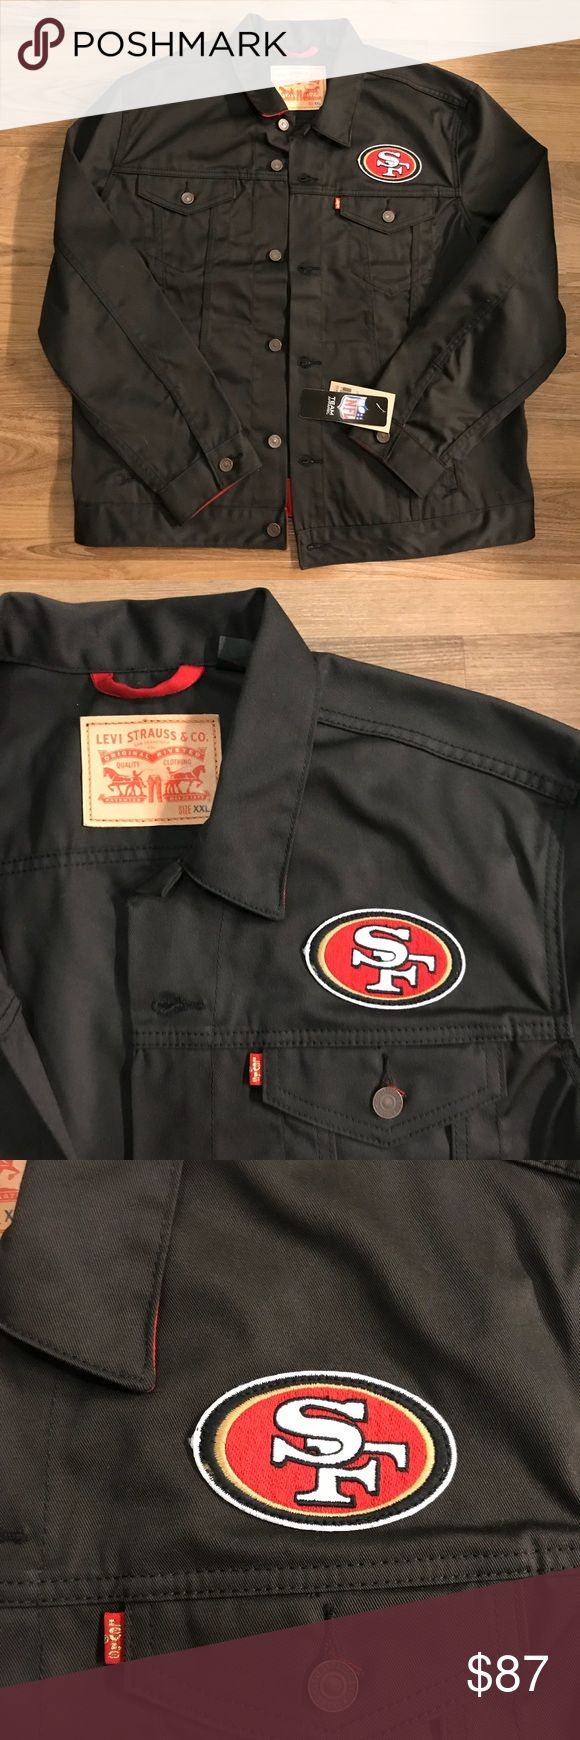 Levi's NFL Denim Jacket New with tag, never worn Levi's 49ers Jackets. Black denim. Size XXL but fits like an XL. I also have one in size medium that is true to size. Levi's Jackets & Coats